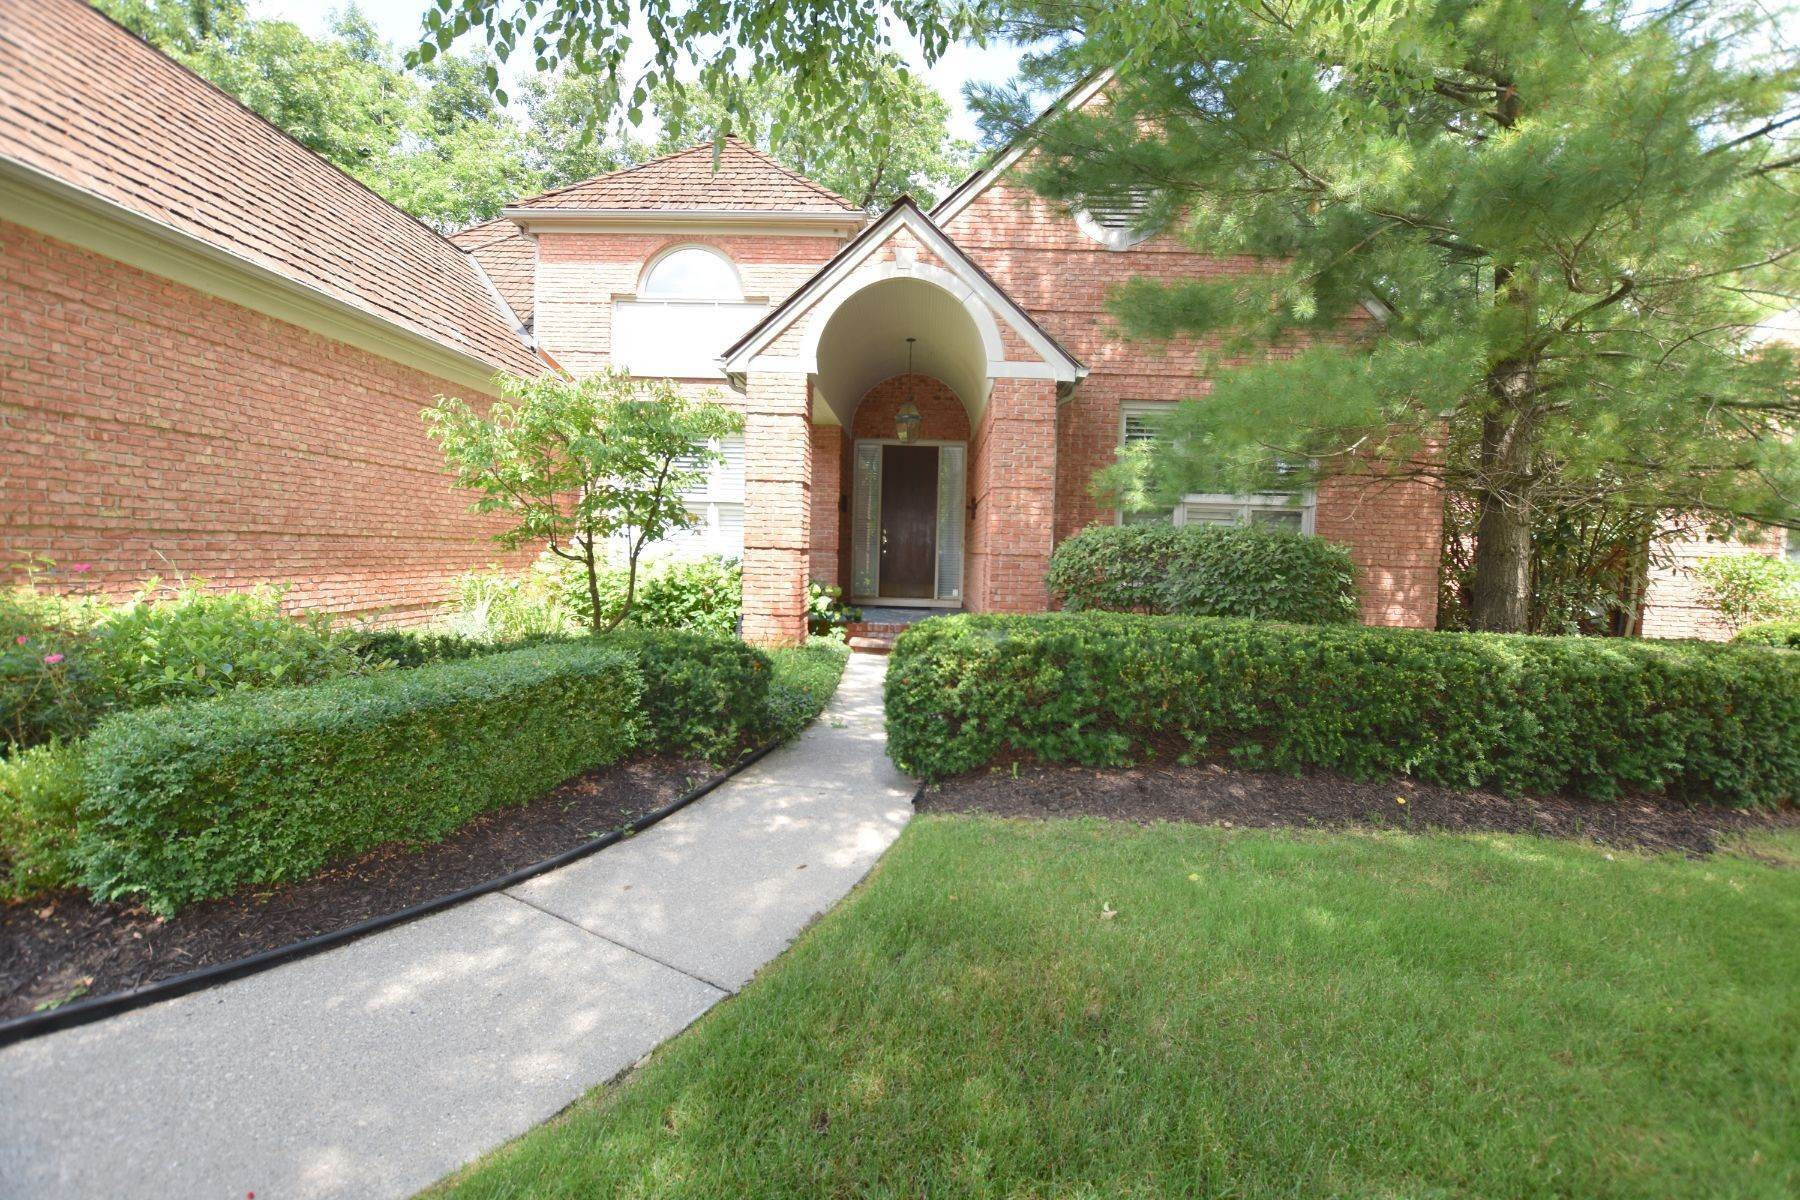 3. Condominiums for Sale at Bloomfield Hills 1140 Lone Pine Woods Drive Bloomfield Hills, Michigan 48302 United States